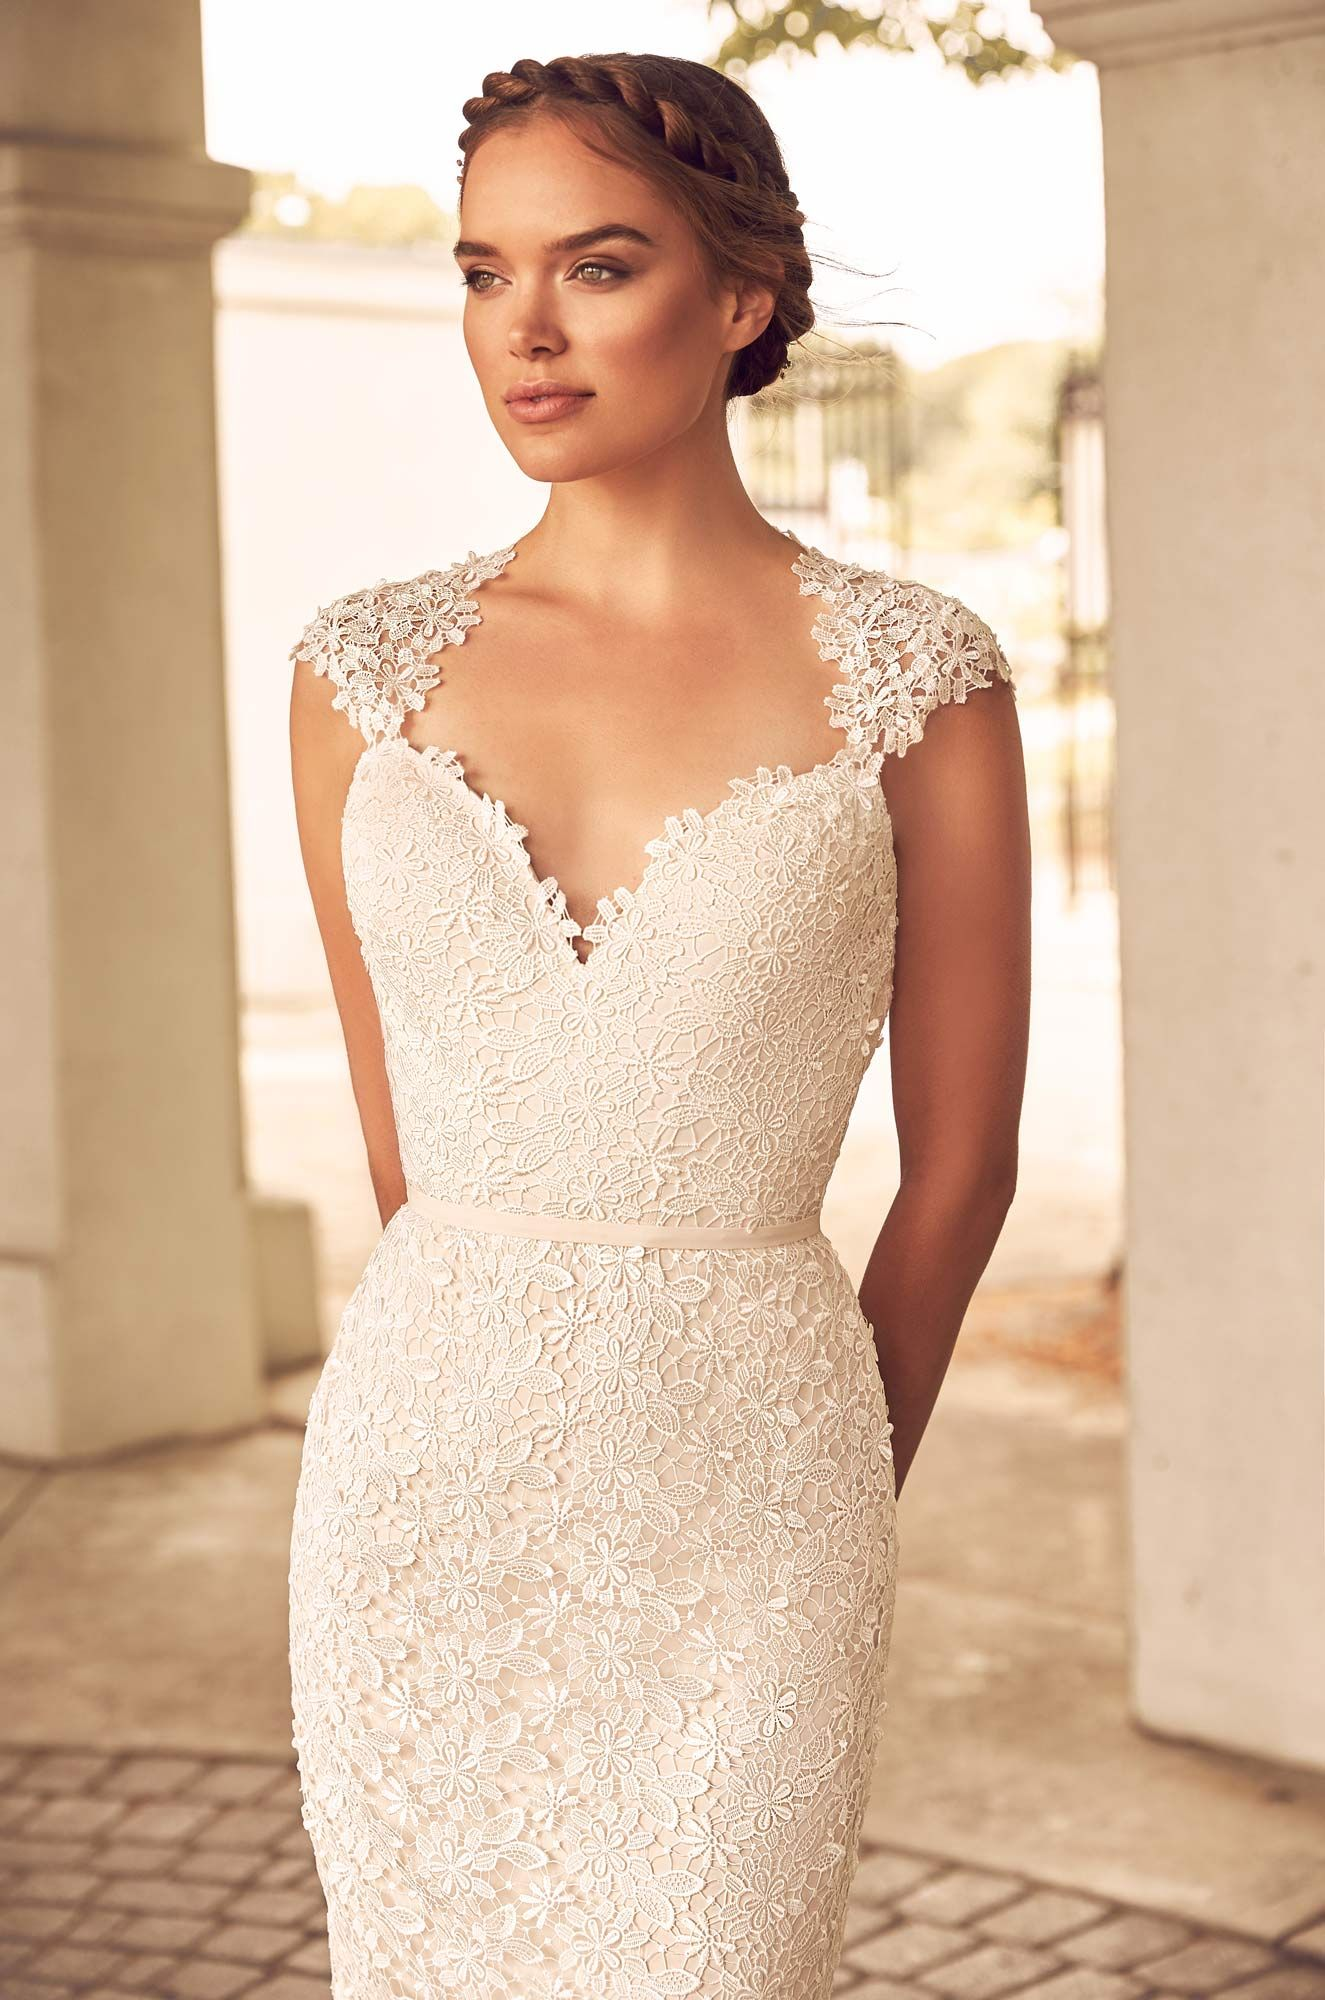 Floral lace wedding dress style paloma blanca lace bodice